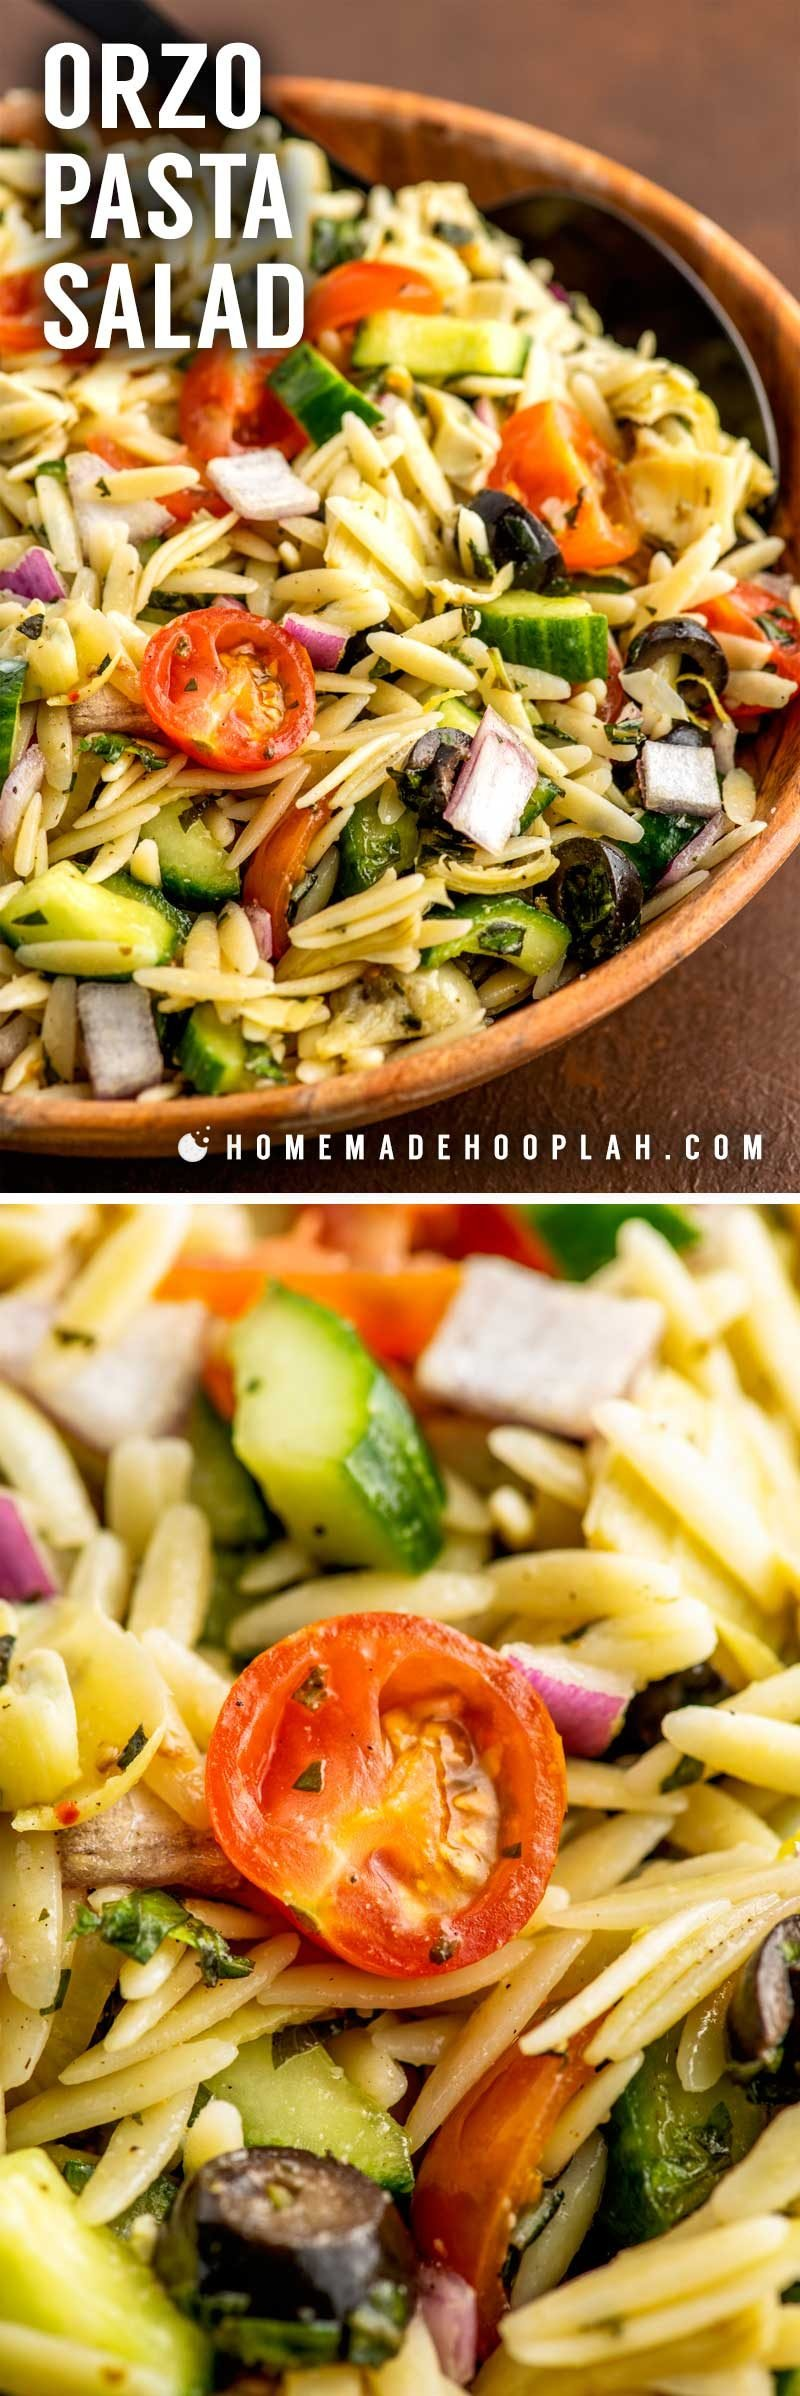 How to make orzo pasta salad with Greek and Italian flair.